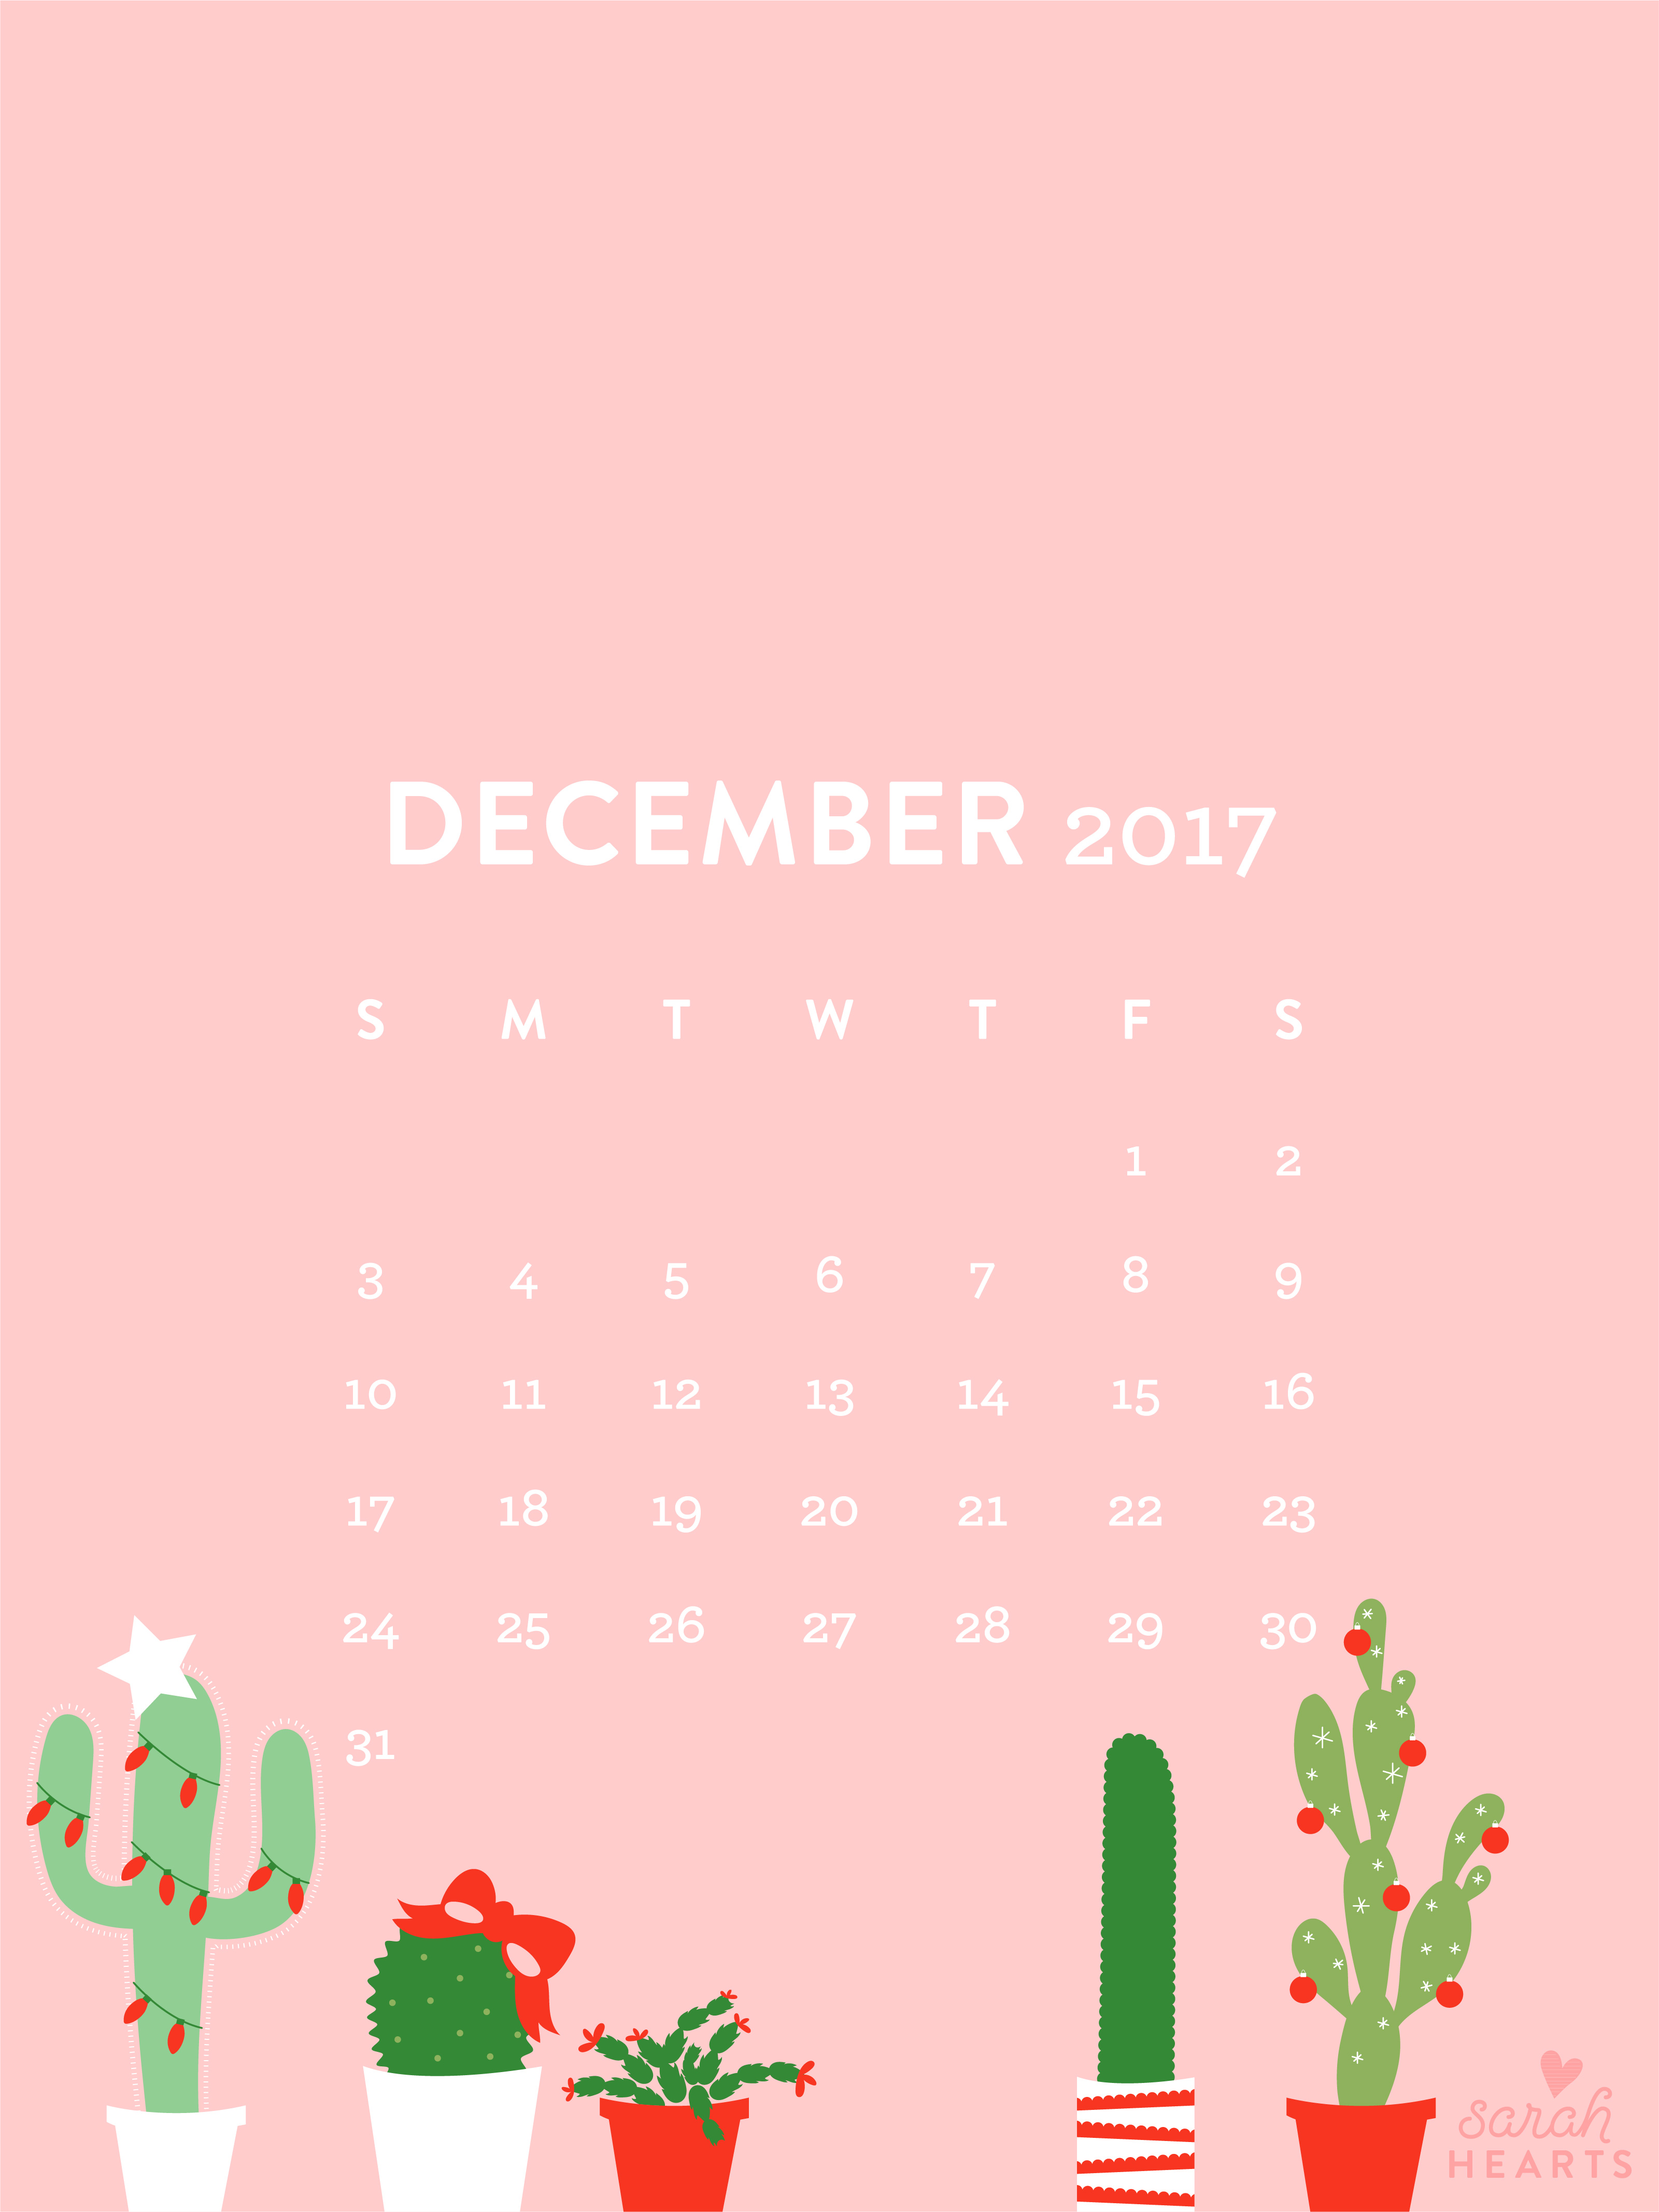 December 2017 Christmas Cactus Calendar Wallpaper - Sarah ...